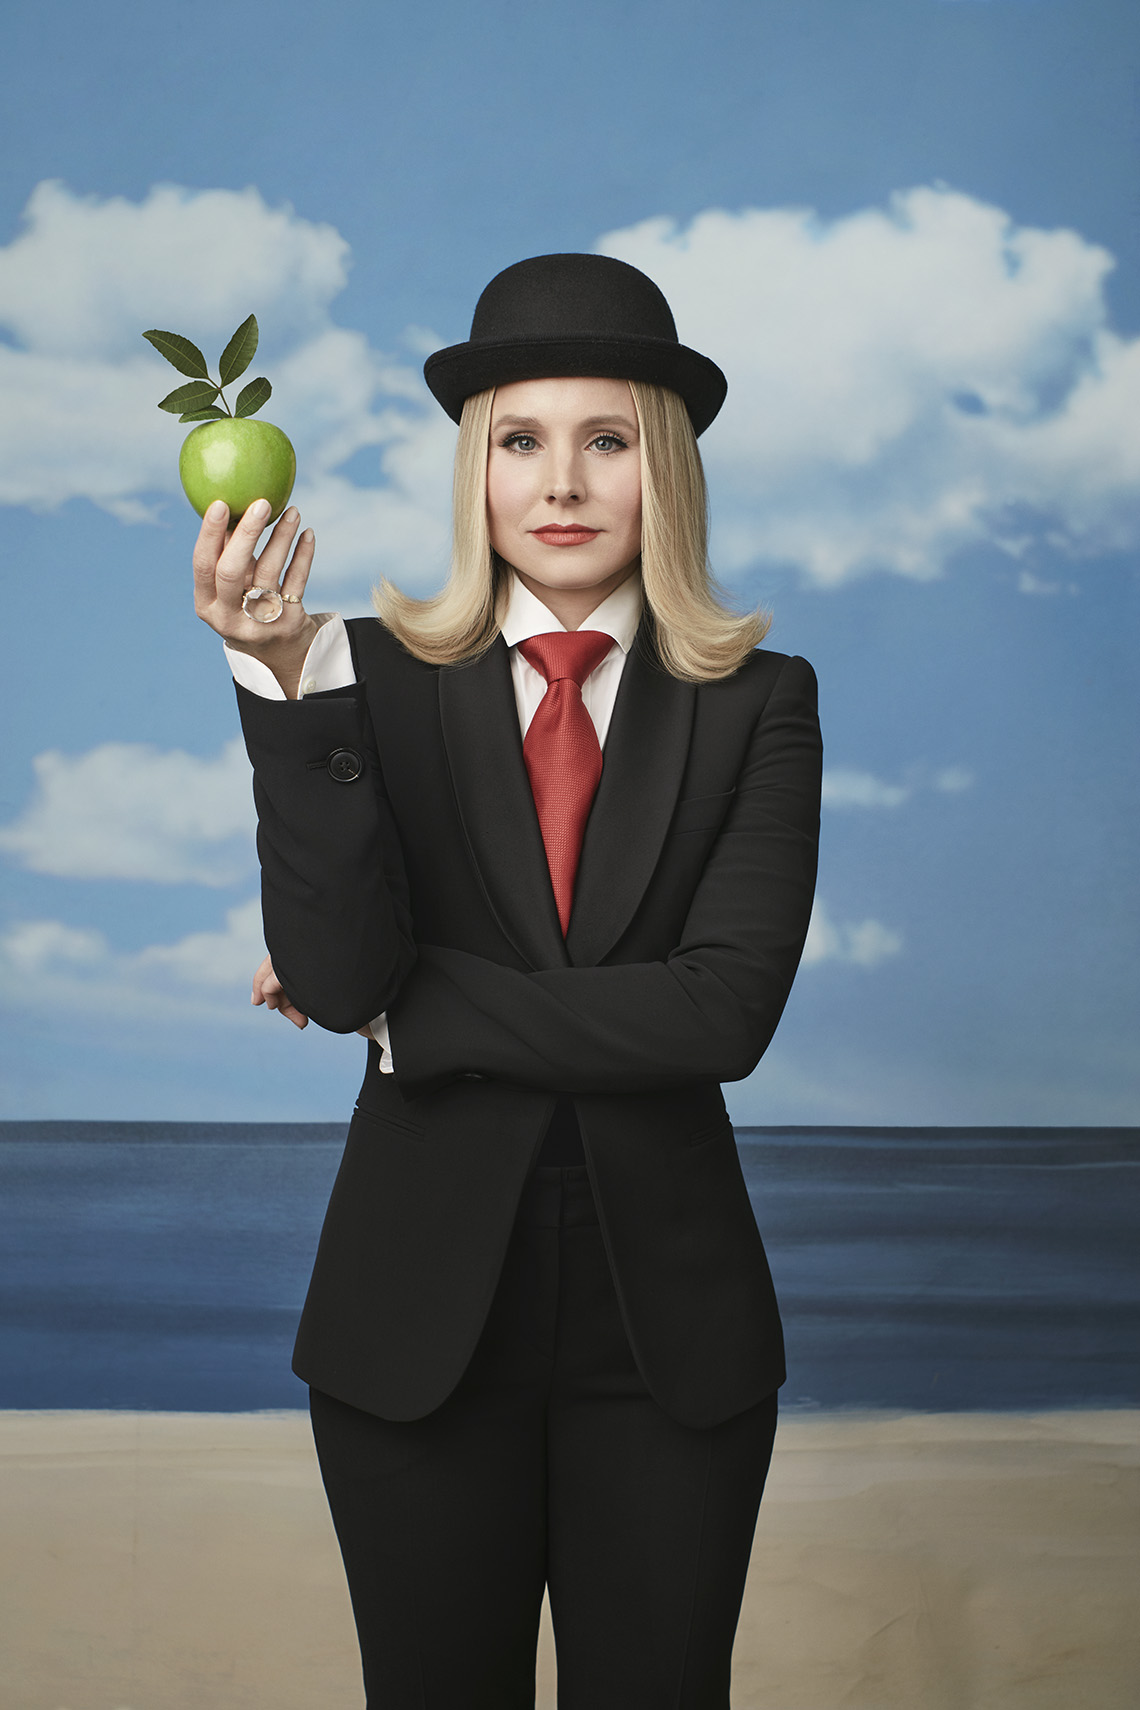 American_Airlines_Kristen_Bell_0277